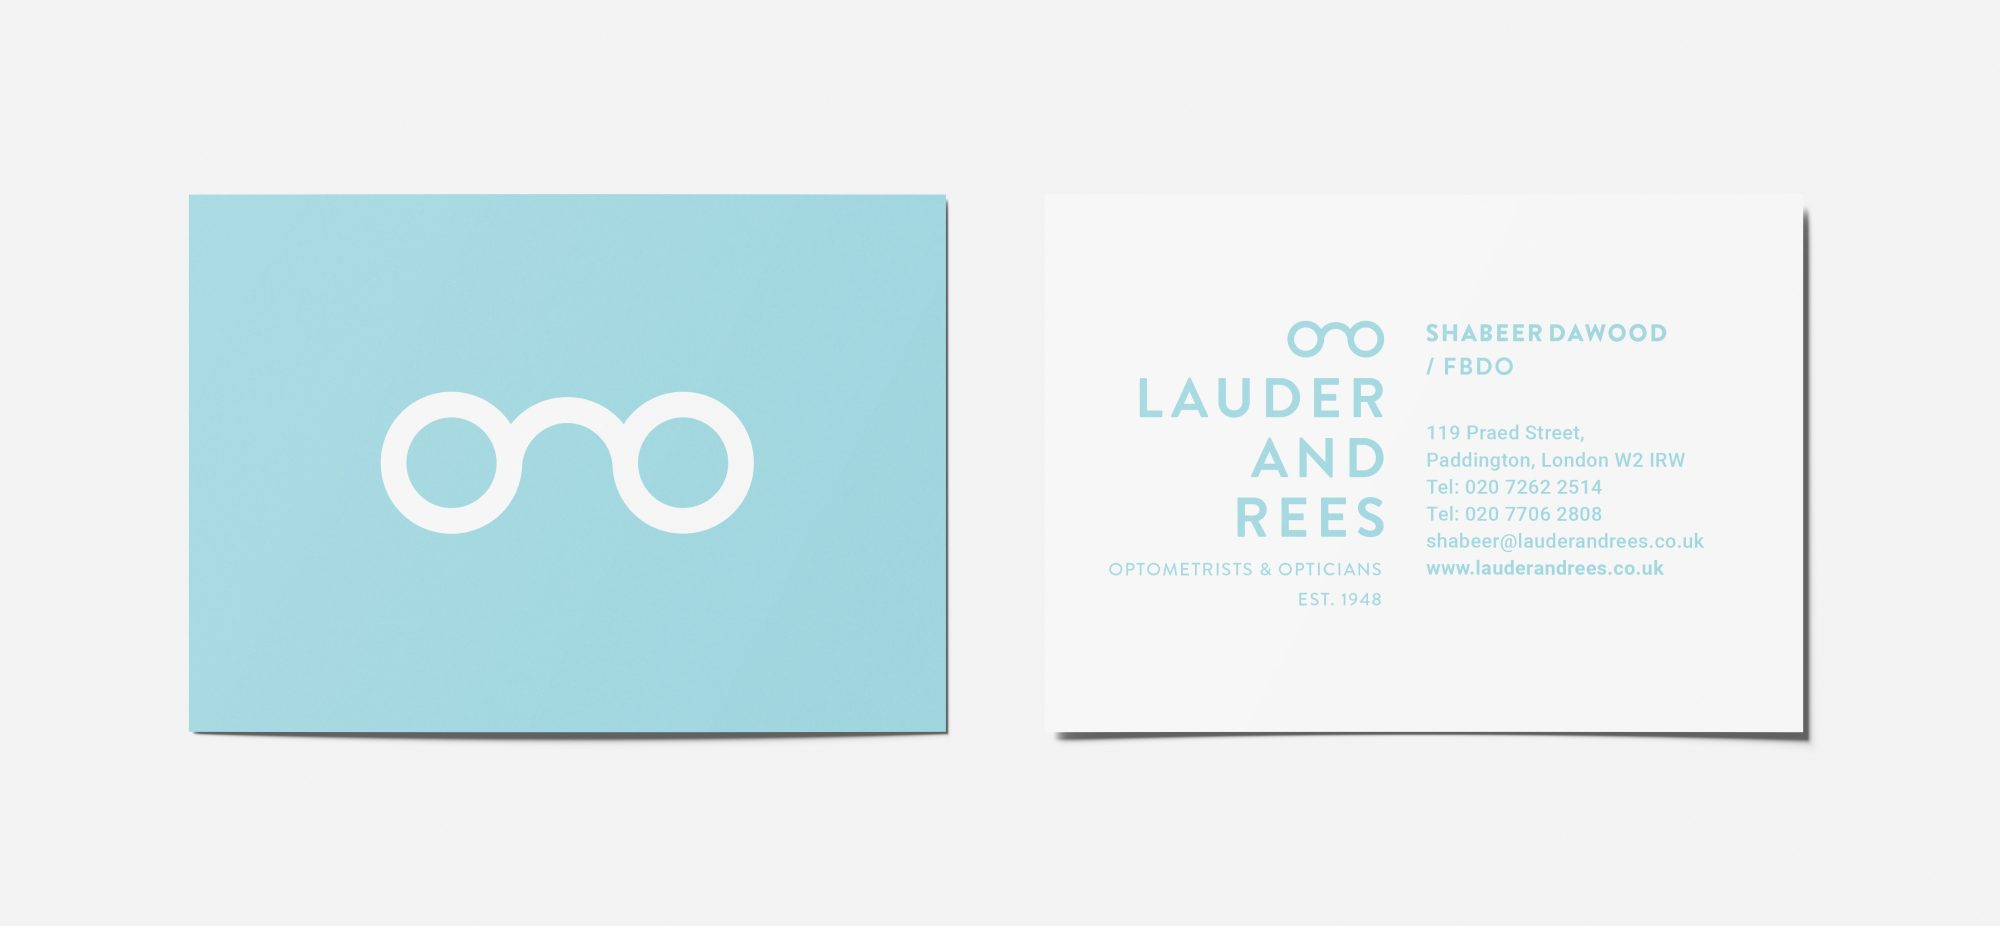 Lauder & Rees Business Cards